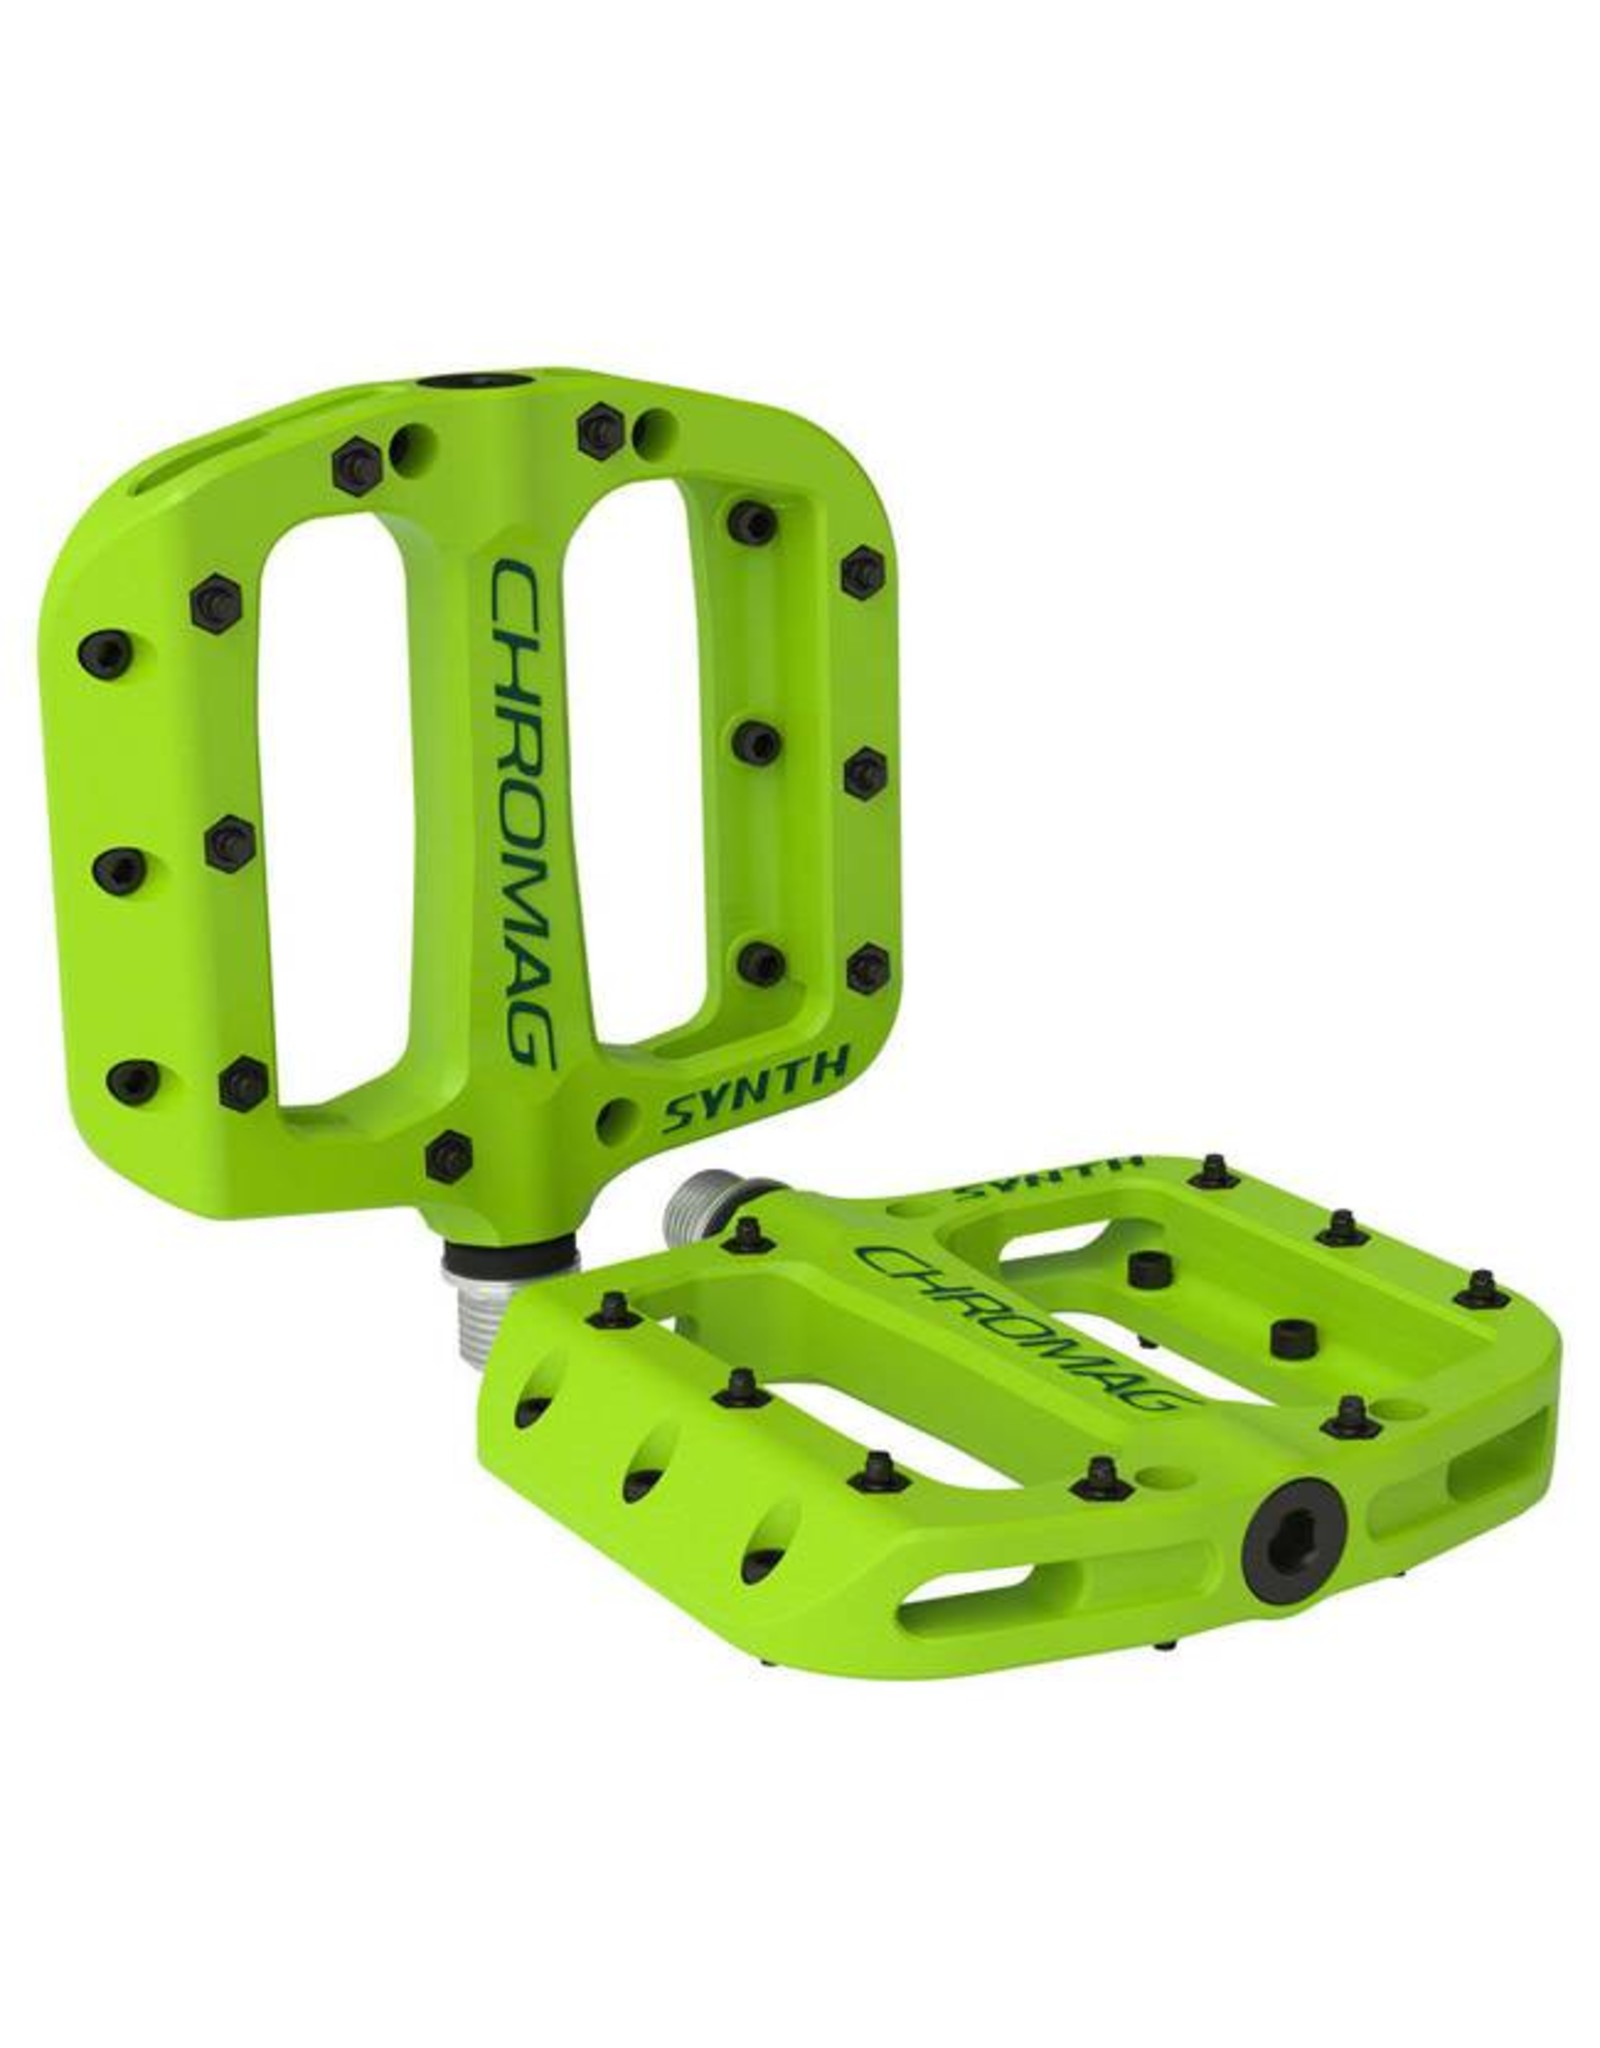 """Chromag Synth Composite Platform Pedals: 9/16"""", Green"""